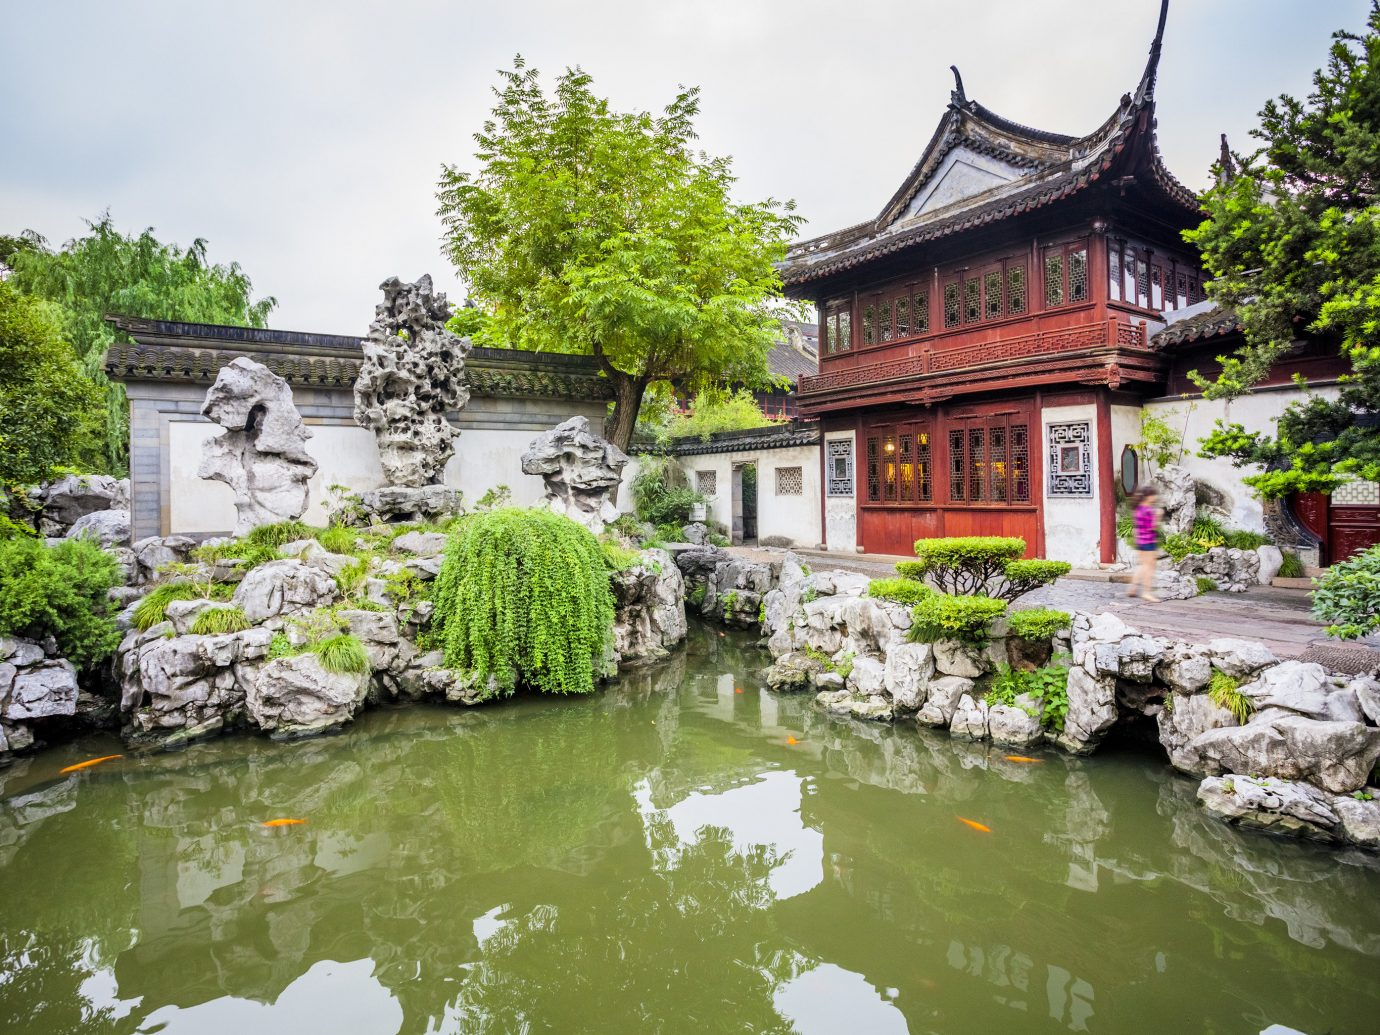 China china rose Shanghai Travel Tips Trip Ideas chinese architecture water reflection tree Garden plant pond watercourse pagoda flower tourist attraction landscape leisure tourism